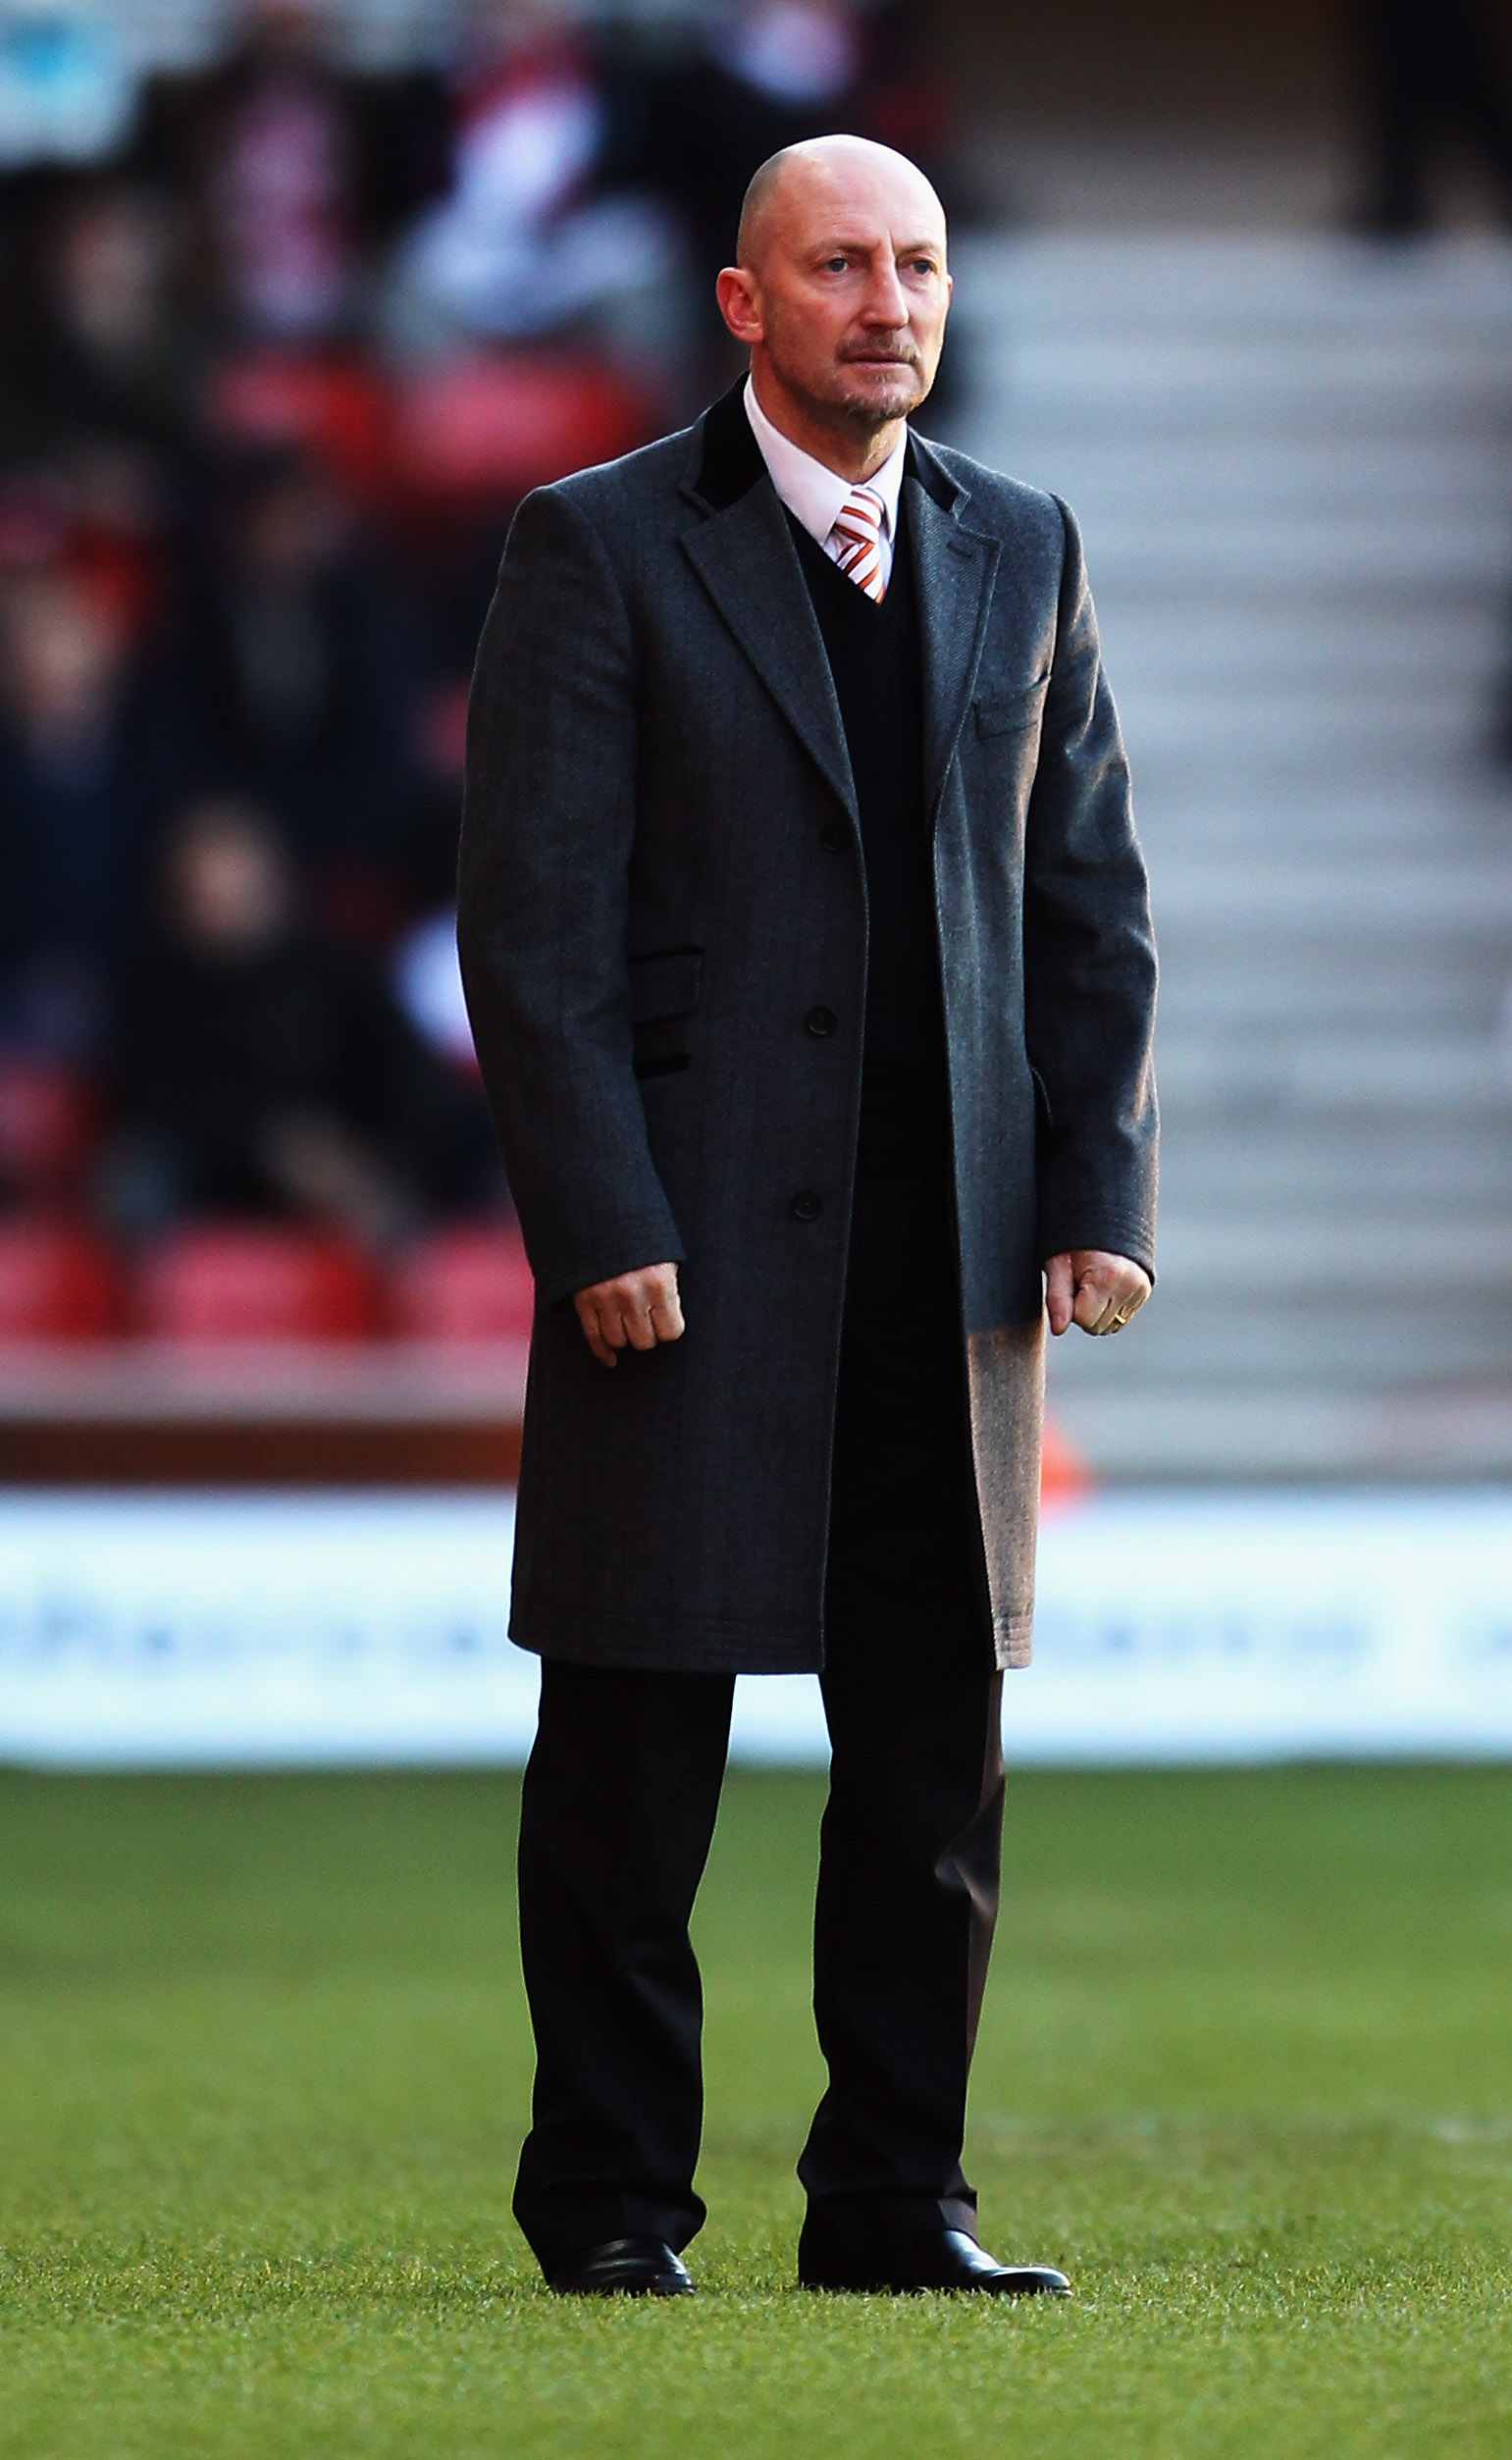 SOUTHAMPTON, ENGLAND - JANUARY 08:  Blackpool Manager Ian Holloway looks on during the FA Cup Sponsored by E.on 3rd Round match between Southampton and Blackpool at St Mary's Stadium on January 8, 2011 in Southampton, England.  (Photo by Bryn Lennon/Getty